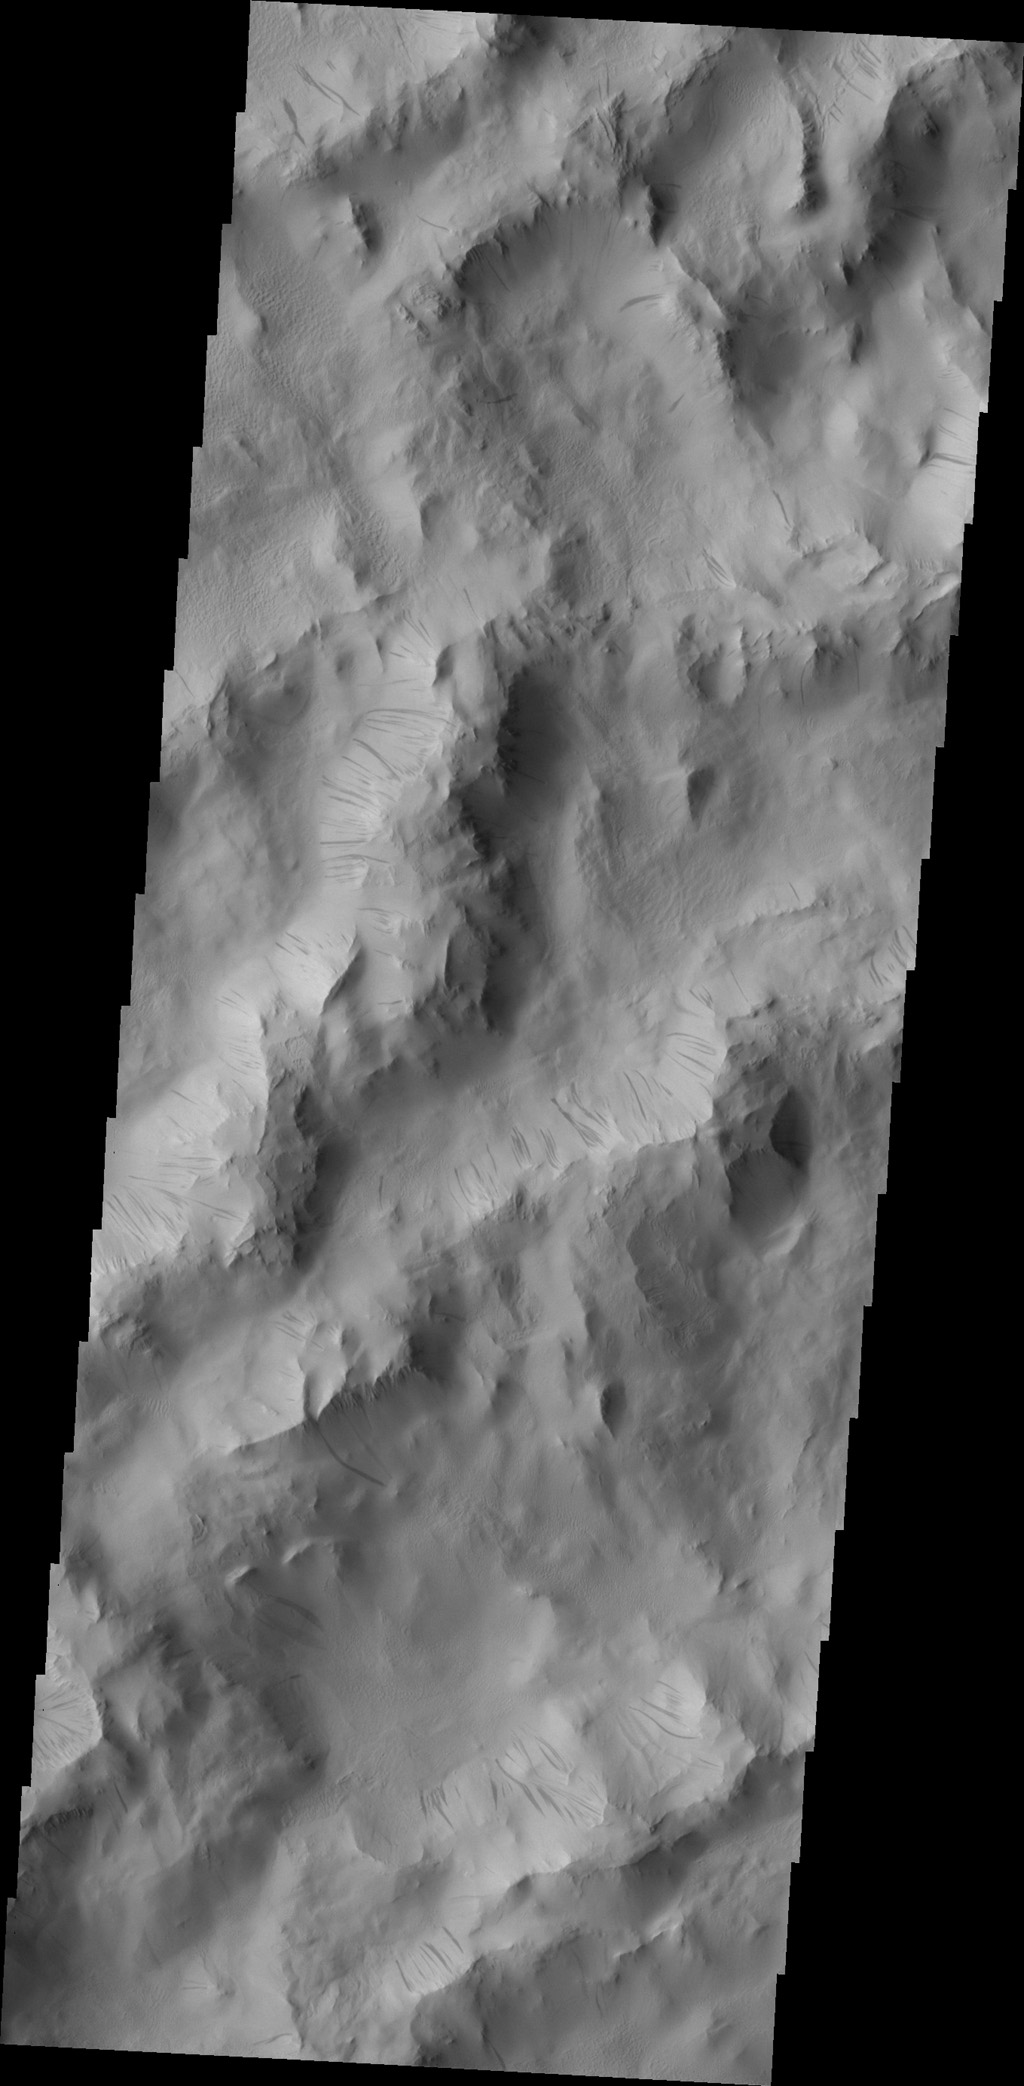 Dark slope streaks are common throughout the ridges that comprise Lycus Sulci in this image captured by NASA's 2001 Mars Odyssey spacecraft.